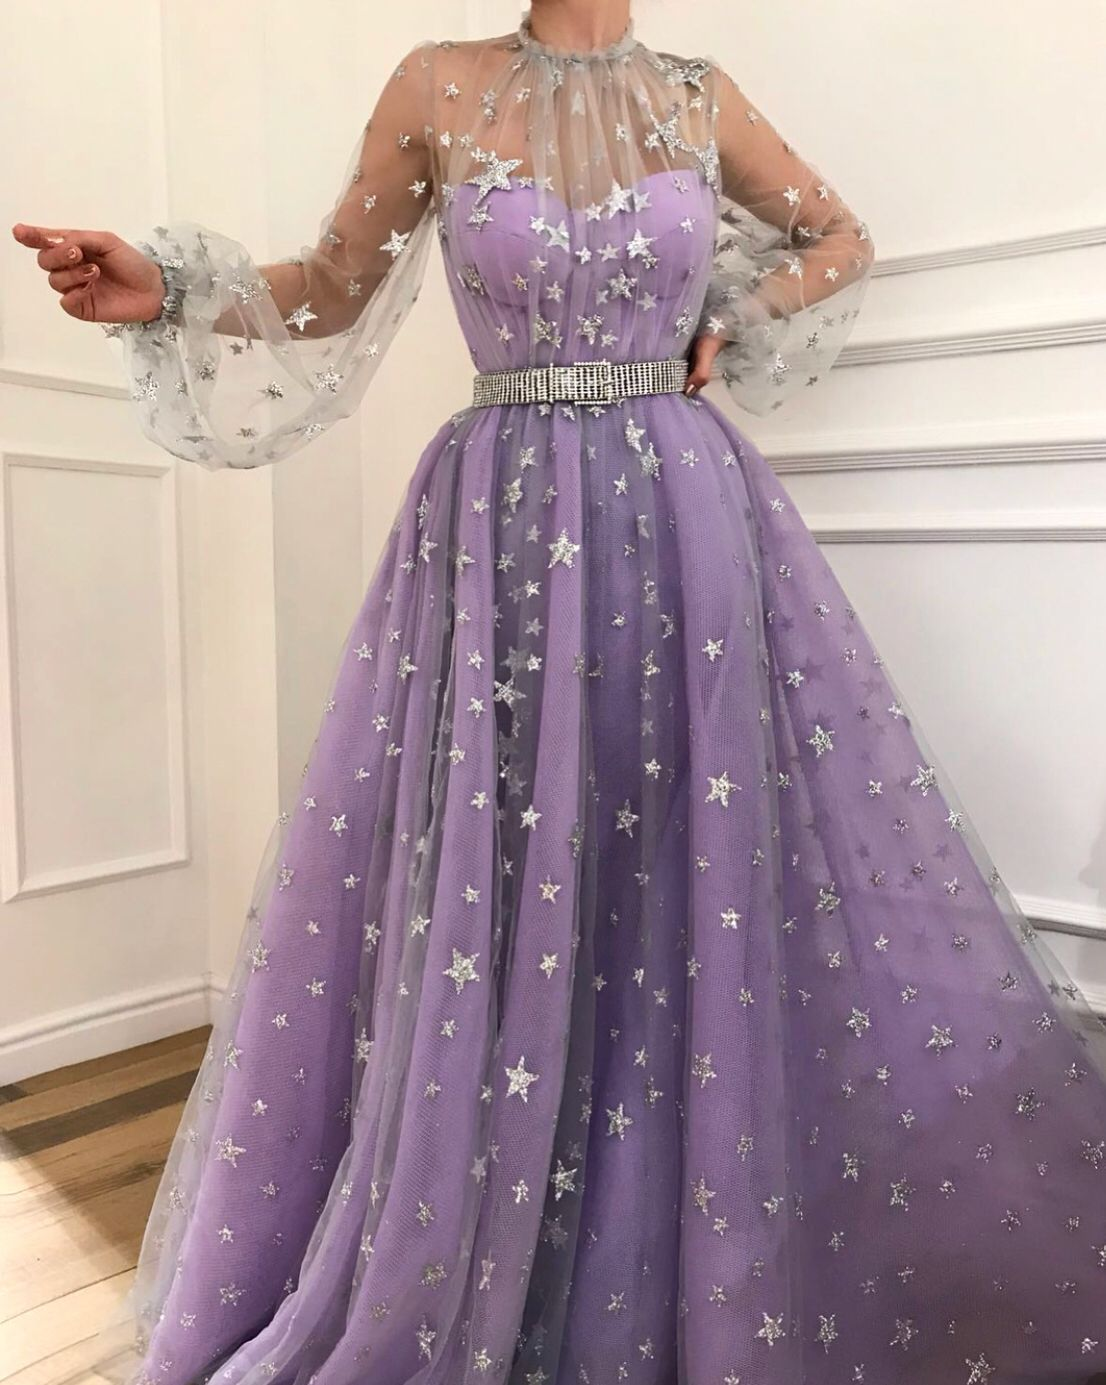 Teuta Matoshi Duriqi - LOVE this lilac colored star dress, reminds